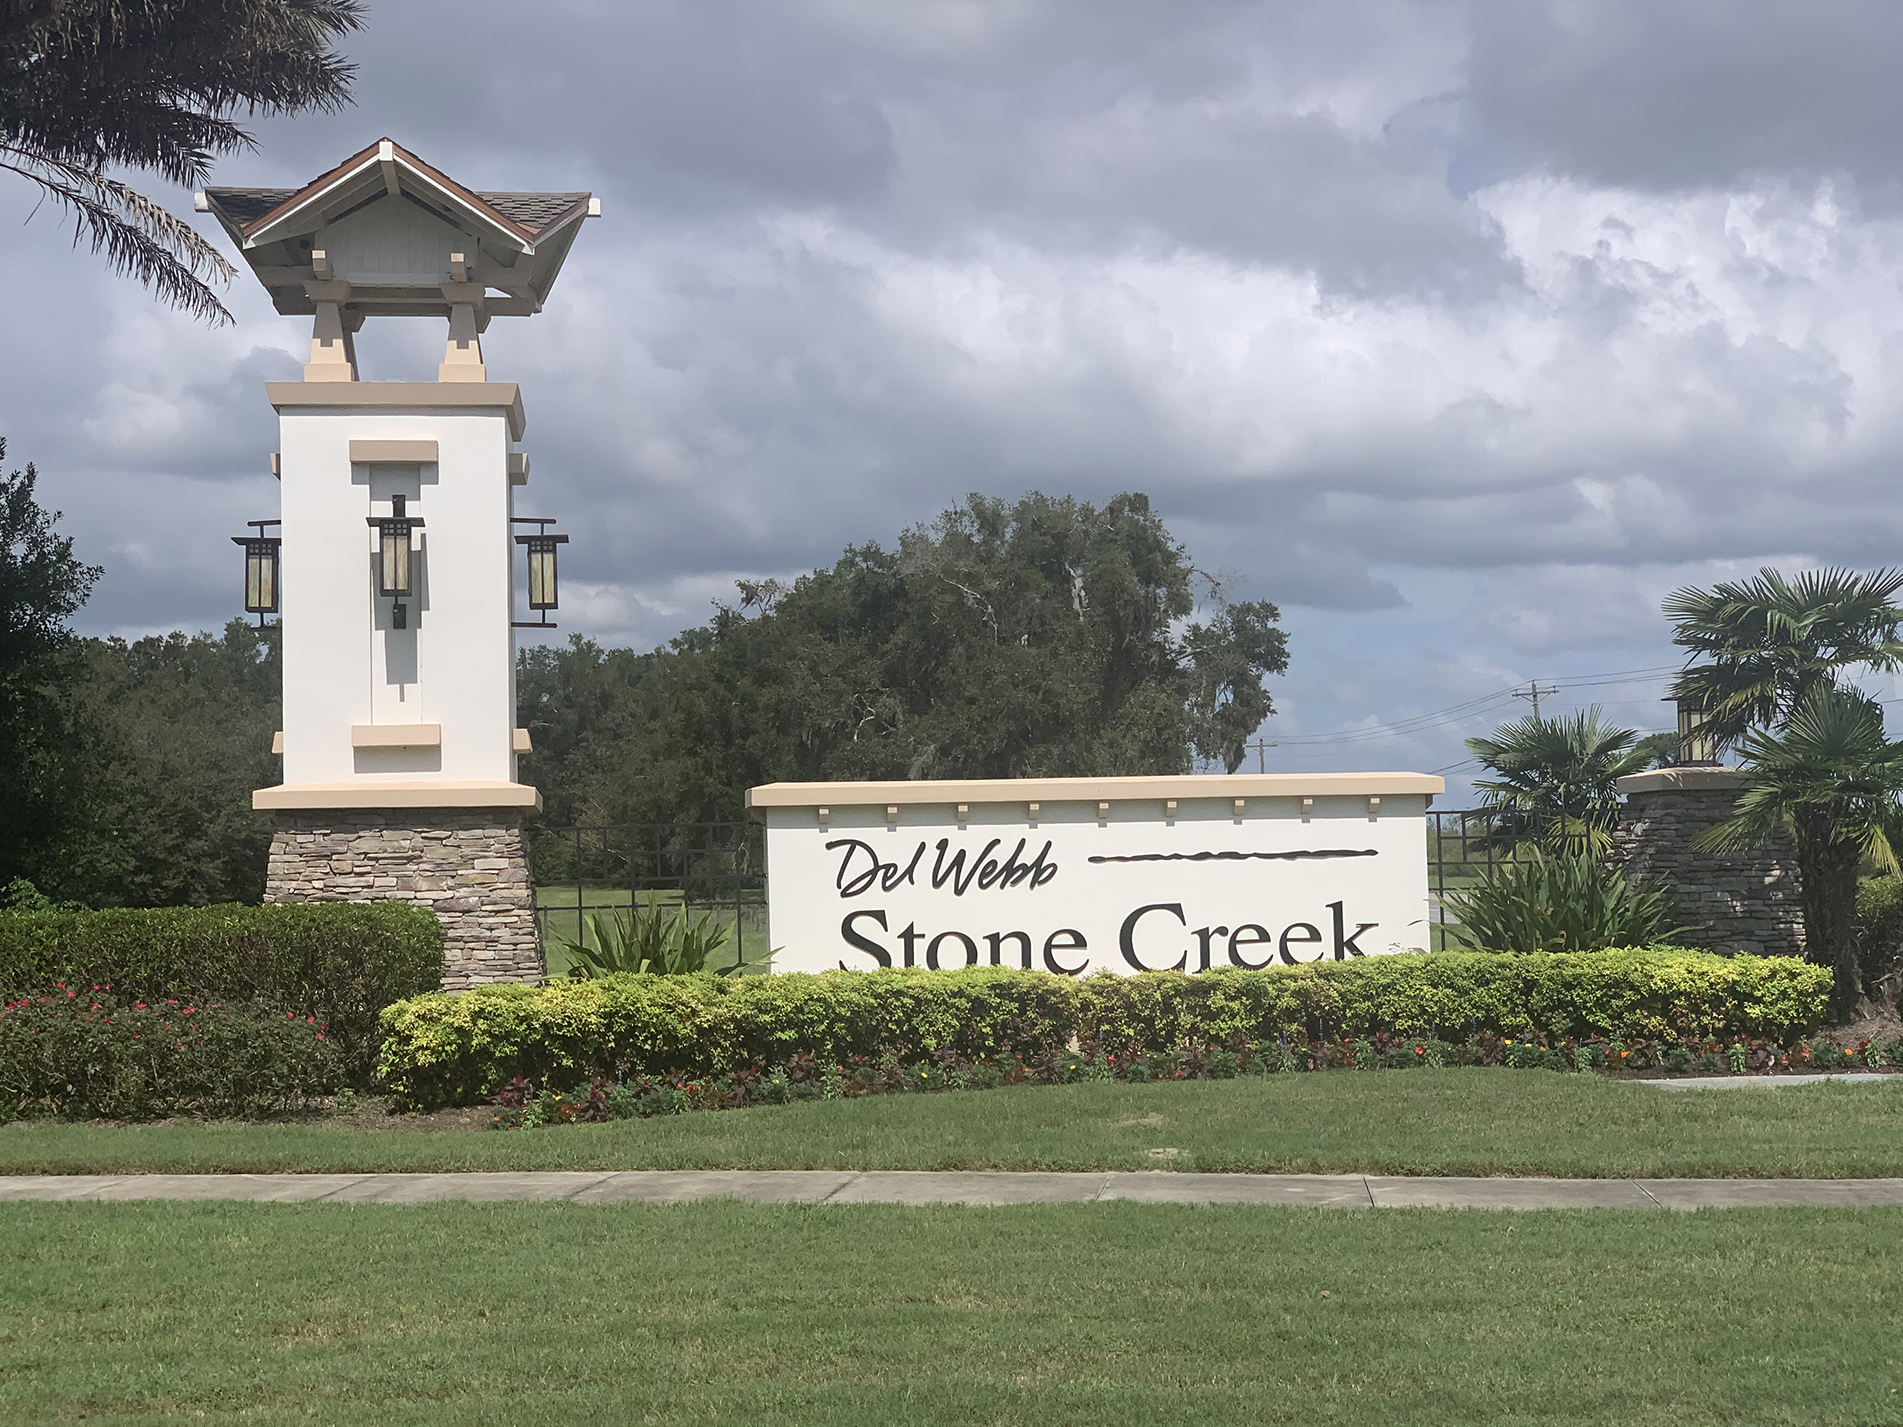 Stone Creek Ocala FL Entrance Sign